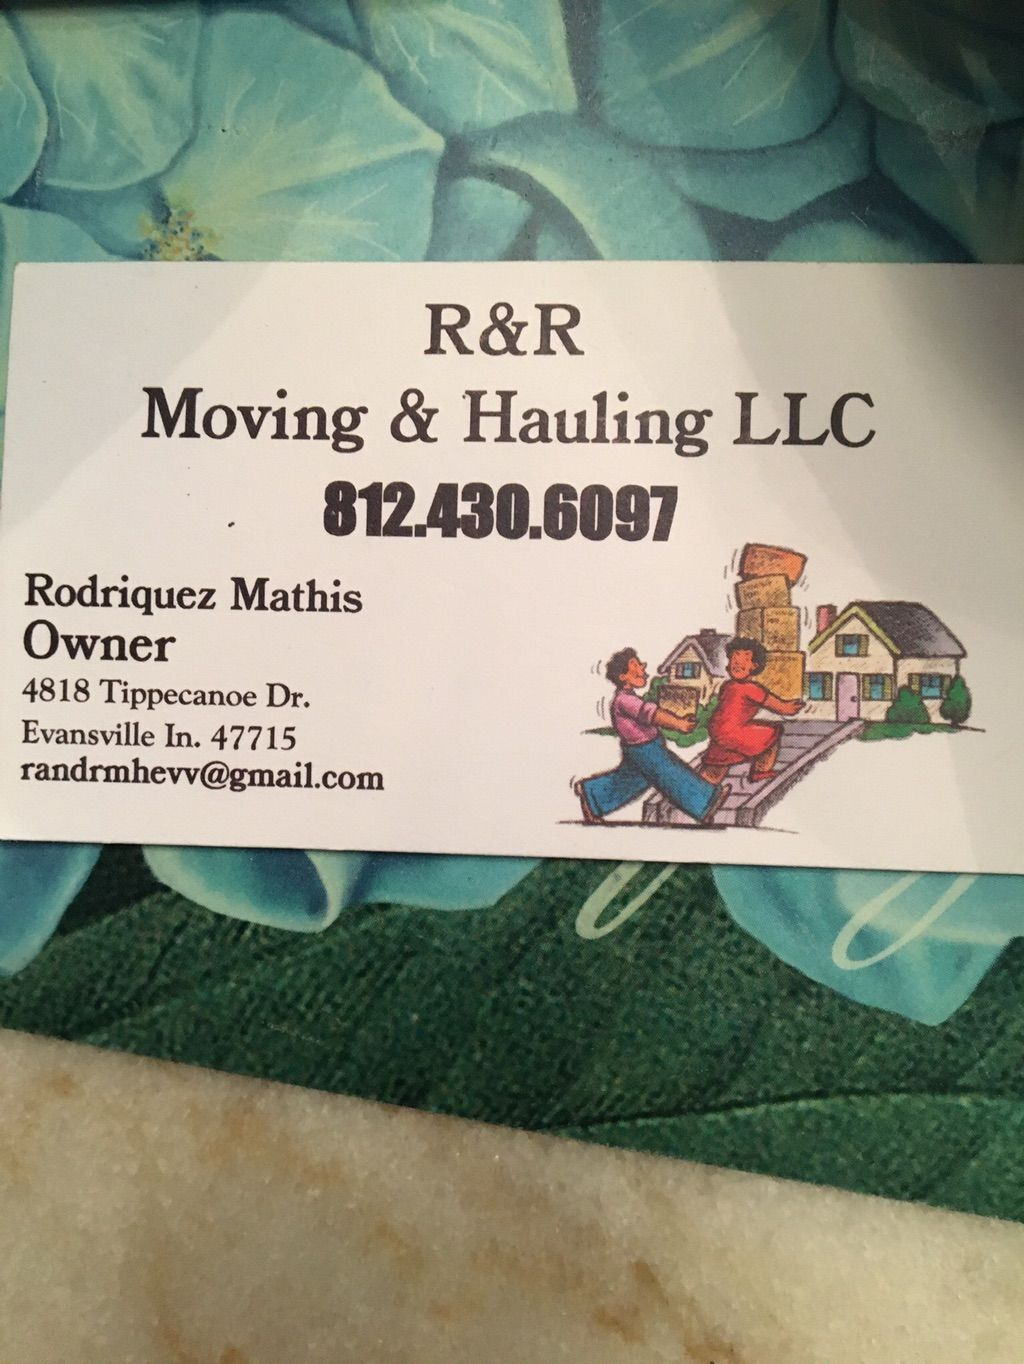 R&R Moving and Hauling